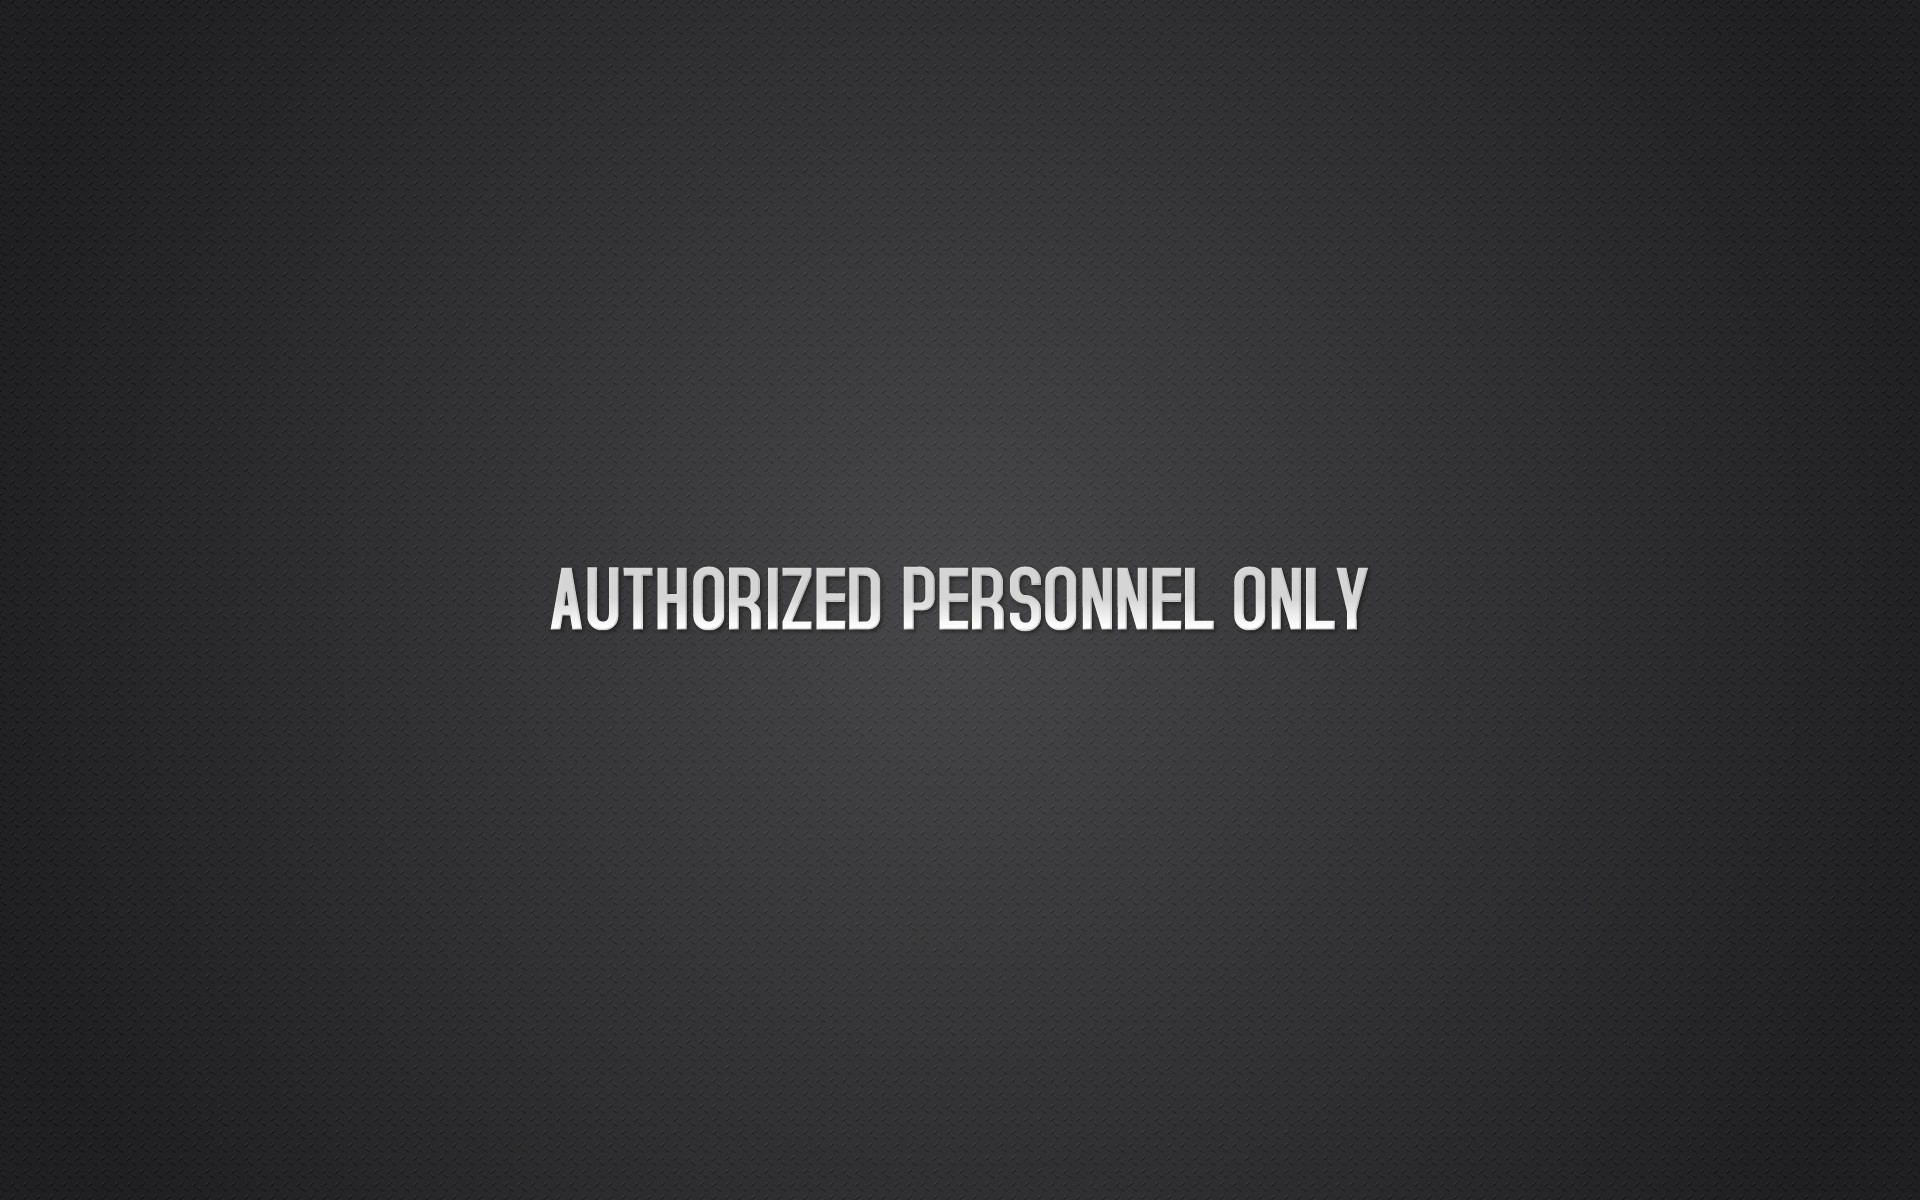 Personnel Authorized And Only Spanish English